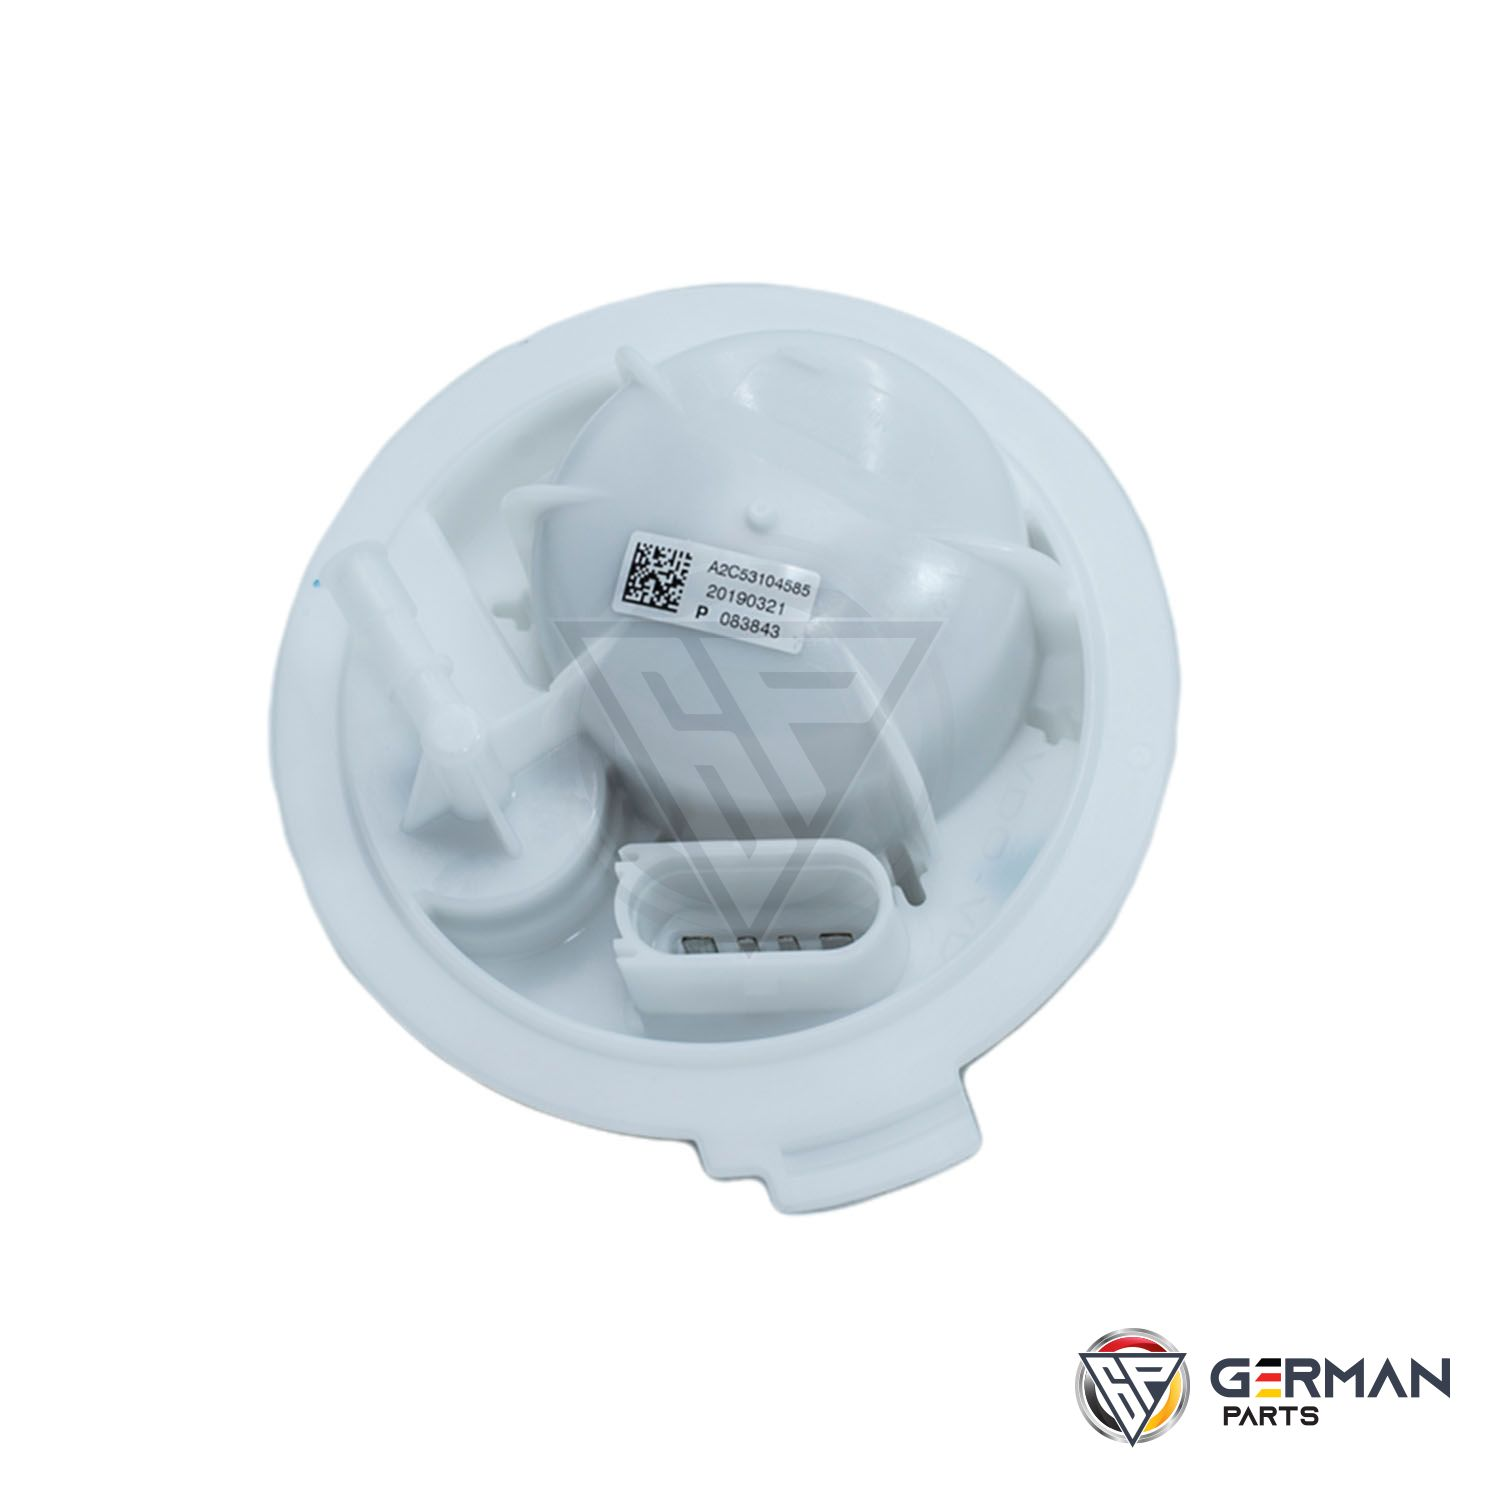 Buy VDO Fuel Filter 7L8919679 - German Parts